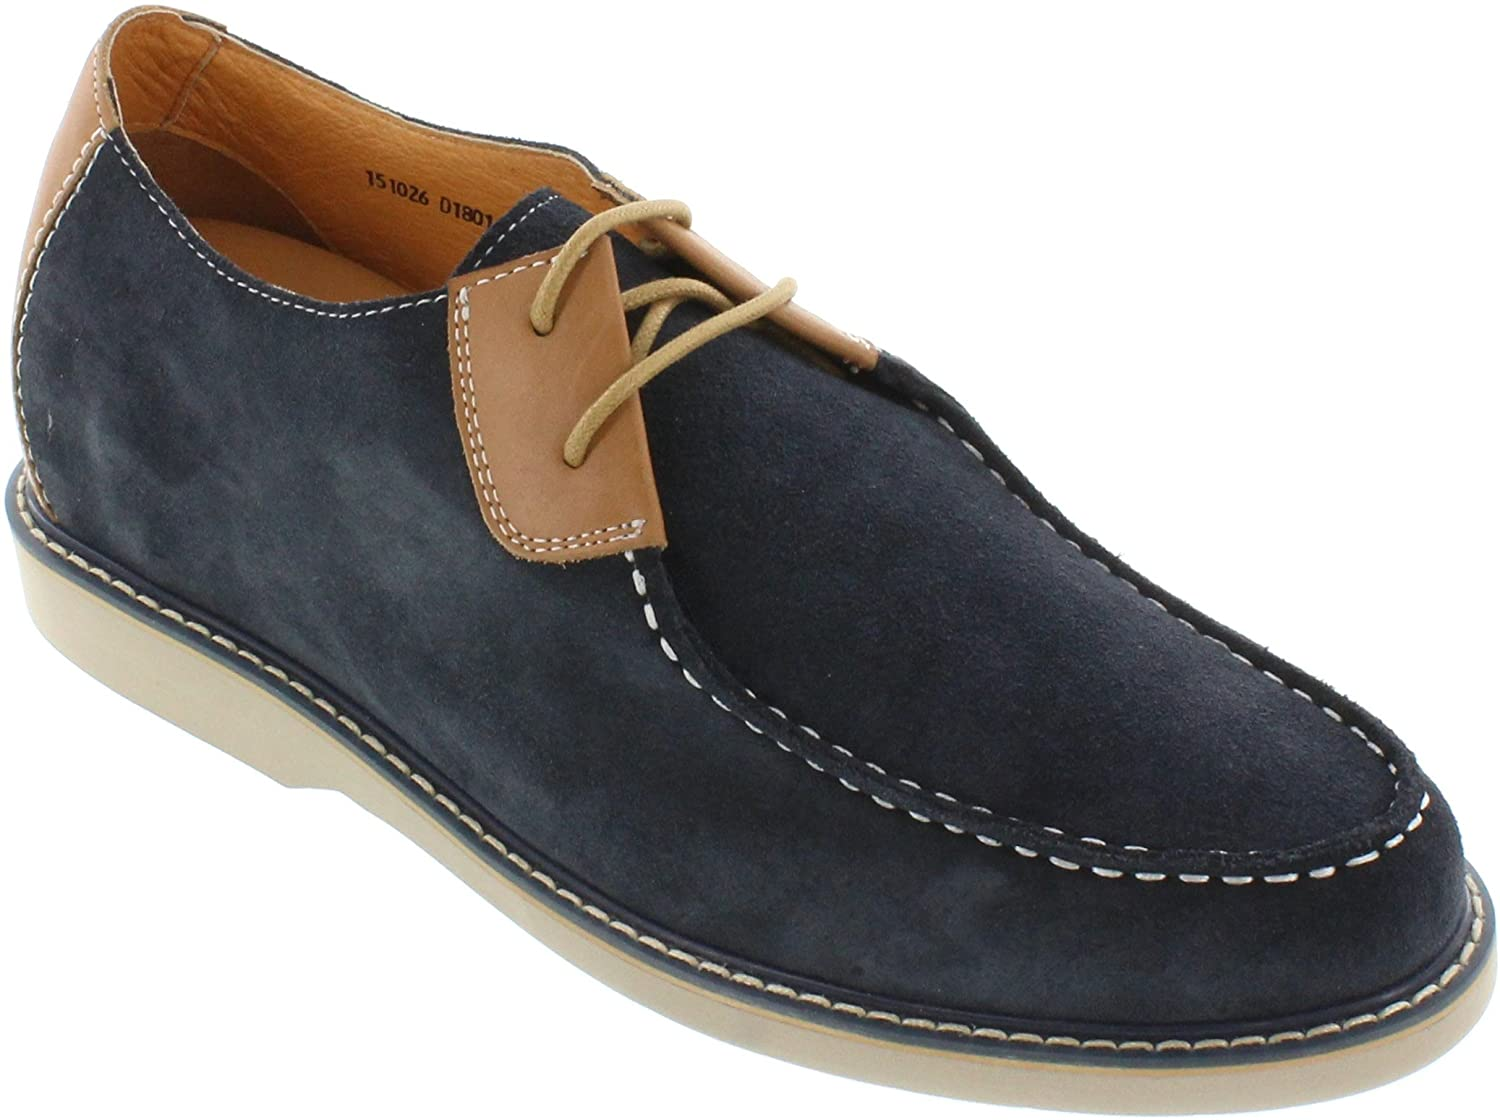 TOTO Men's Invisible Height Increasing Elevator Shoes - Nubuck Navy/Tan Leather Lace-up Lightweight Casual Shoes - 2.4 Inches Taller - D18011